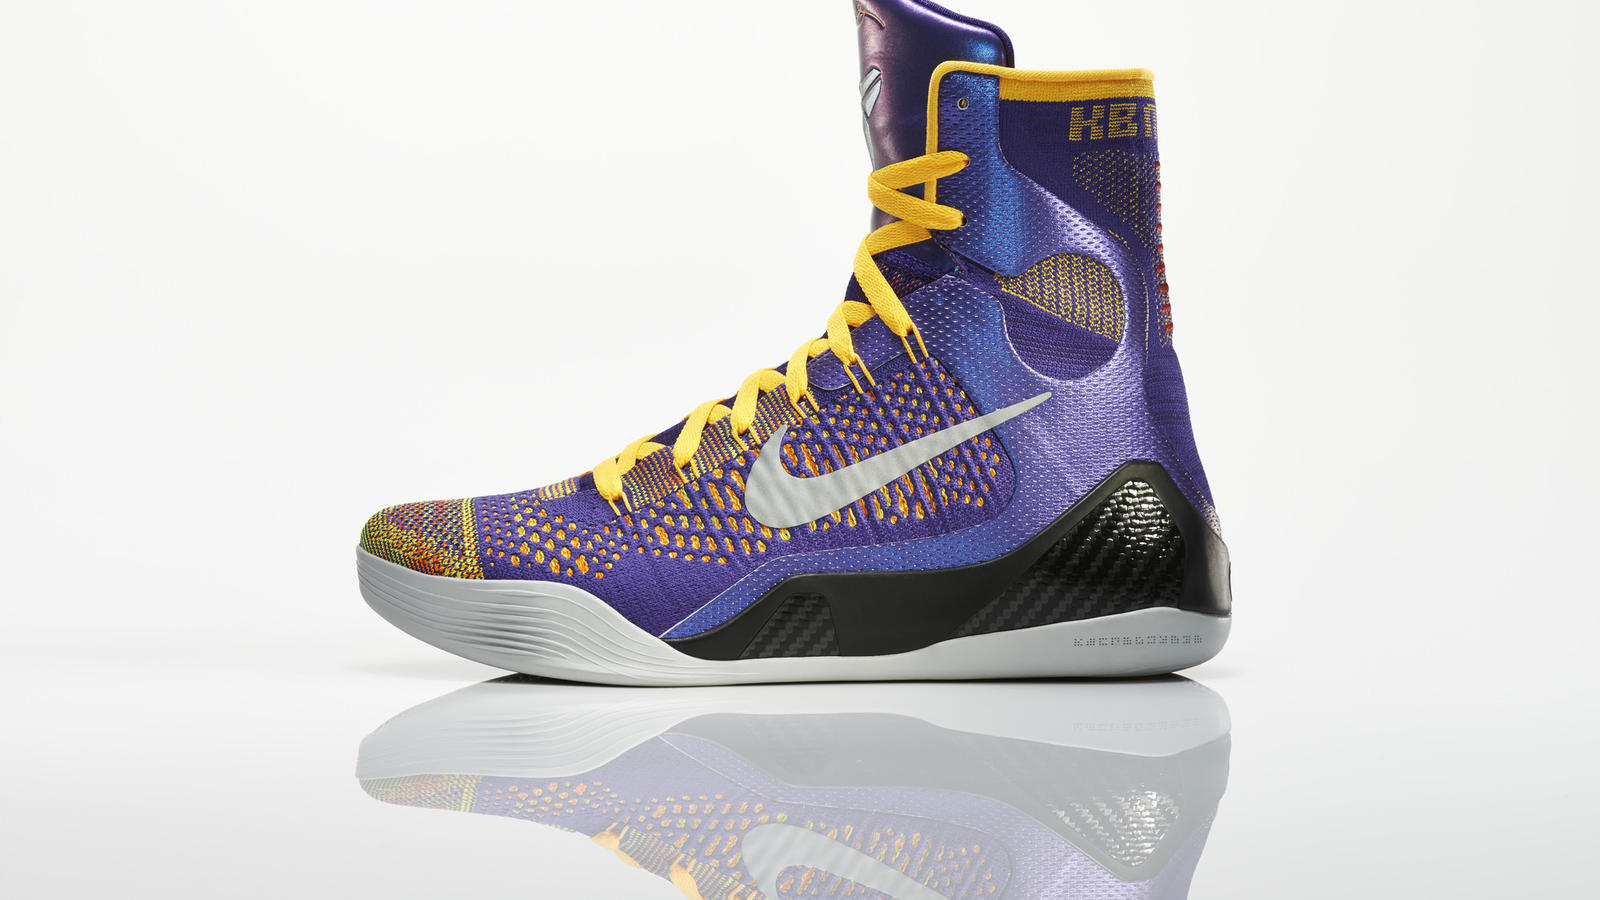 su14_bb_kobe9_elite_630847_500_return_profile_16783